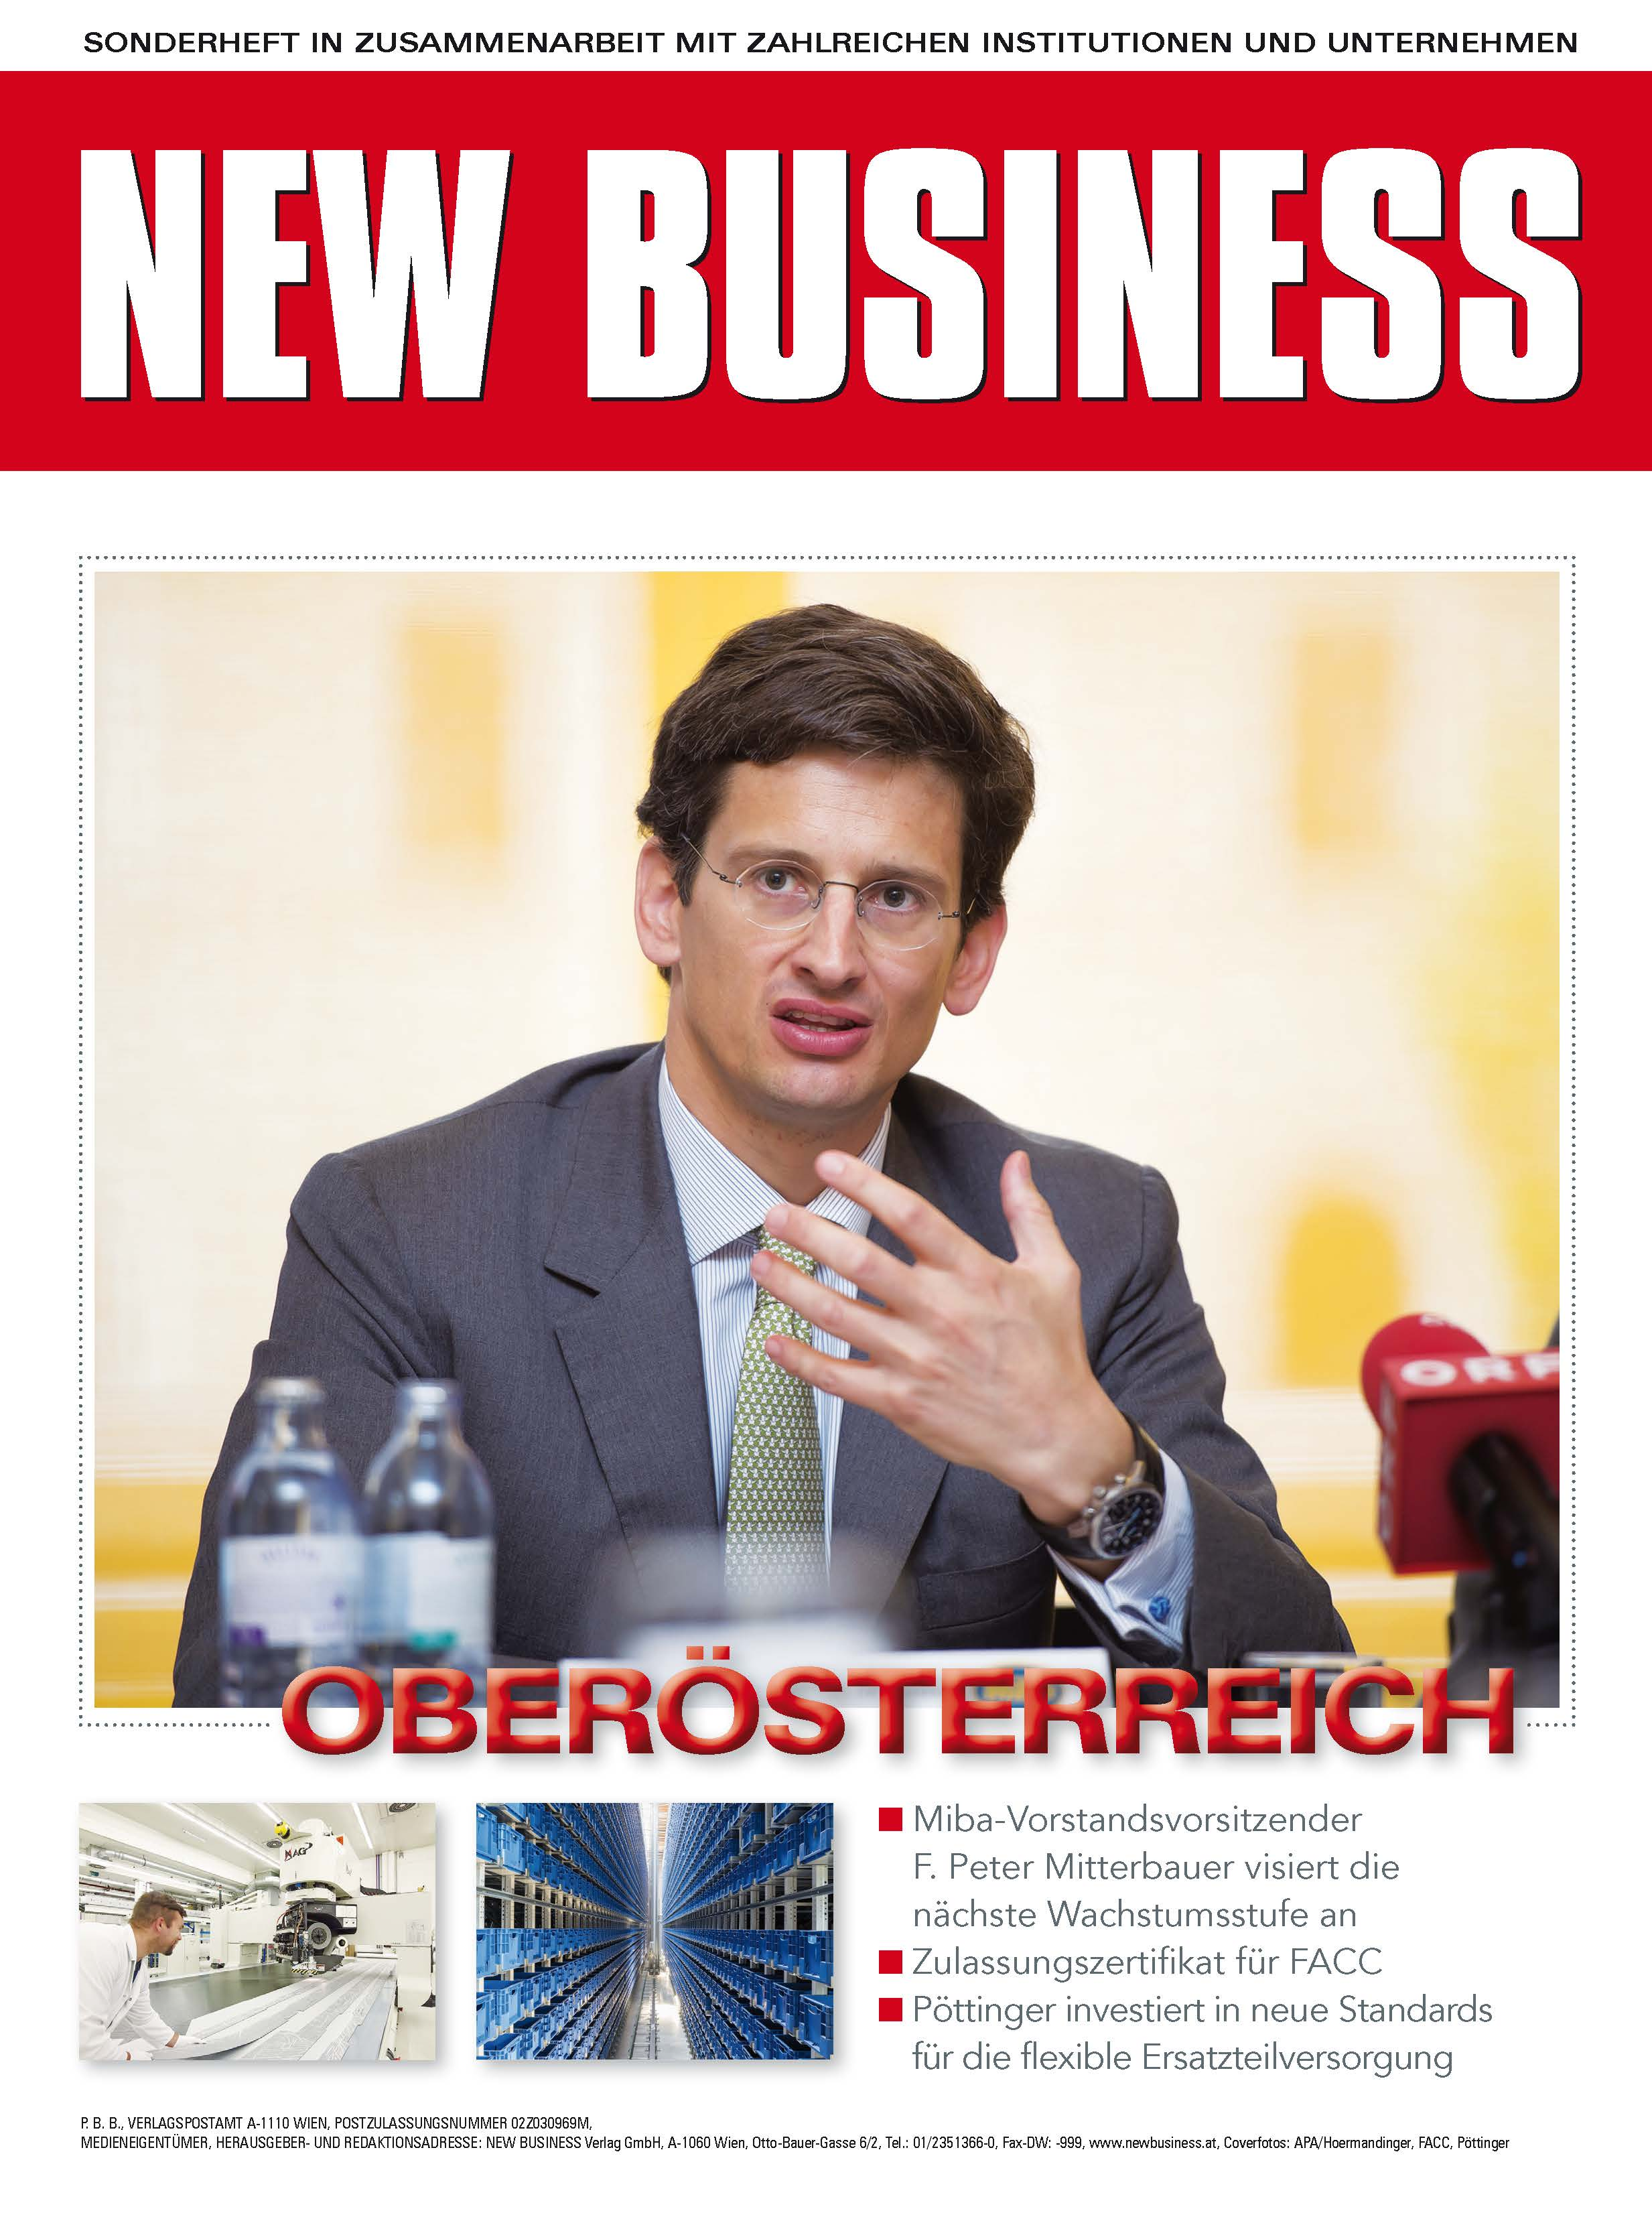 Cover: NEW BUSINESS Bundeslandspecial - OBERÖSTERREICH 2017